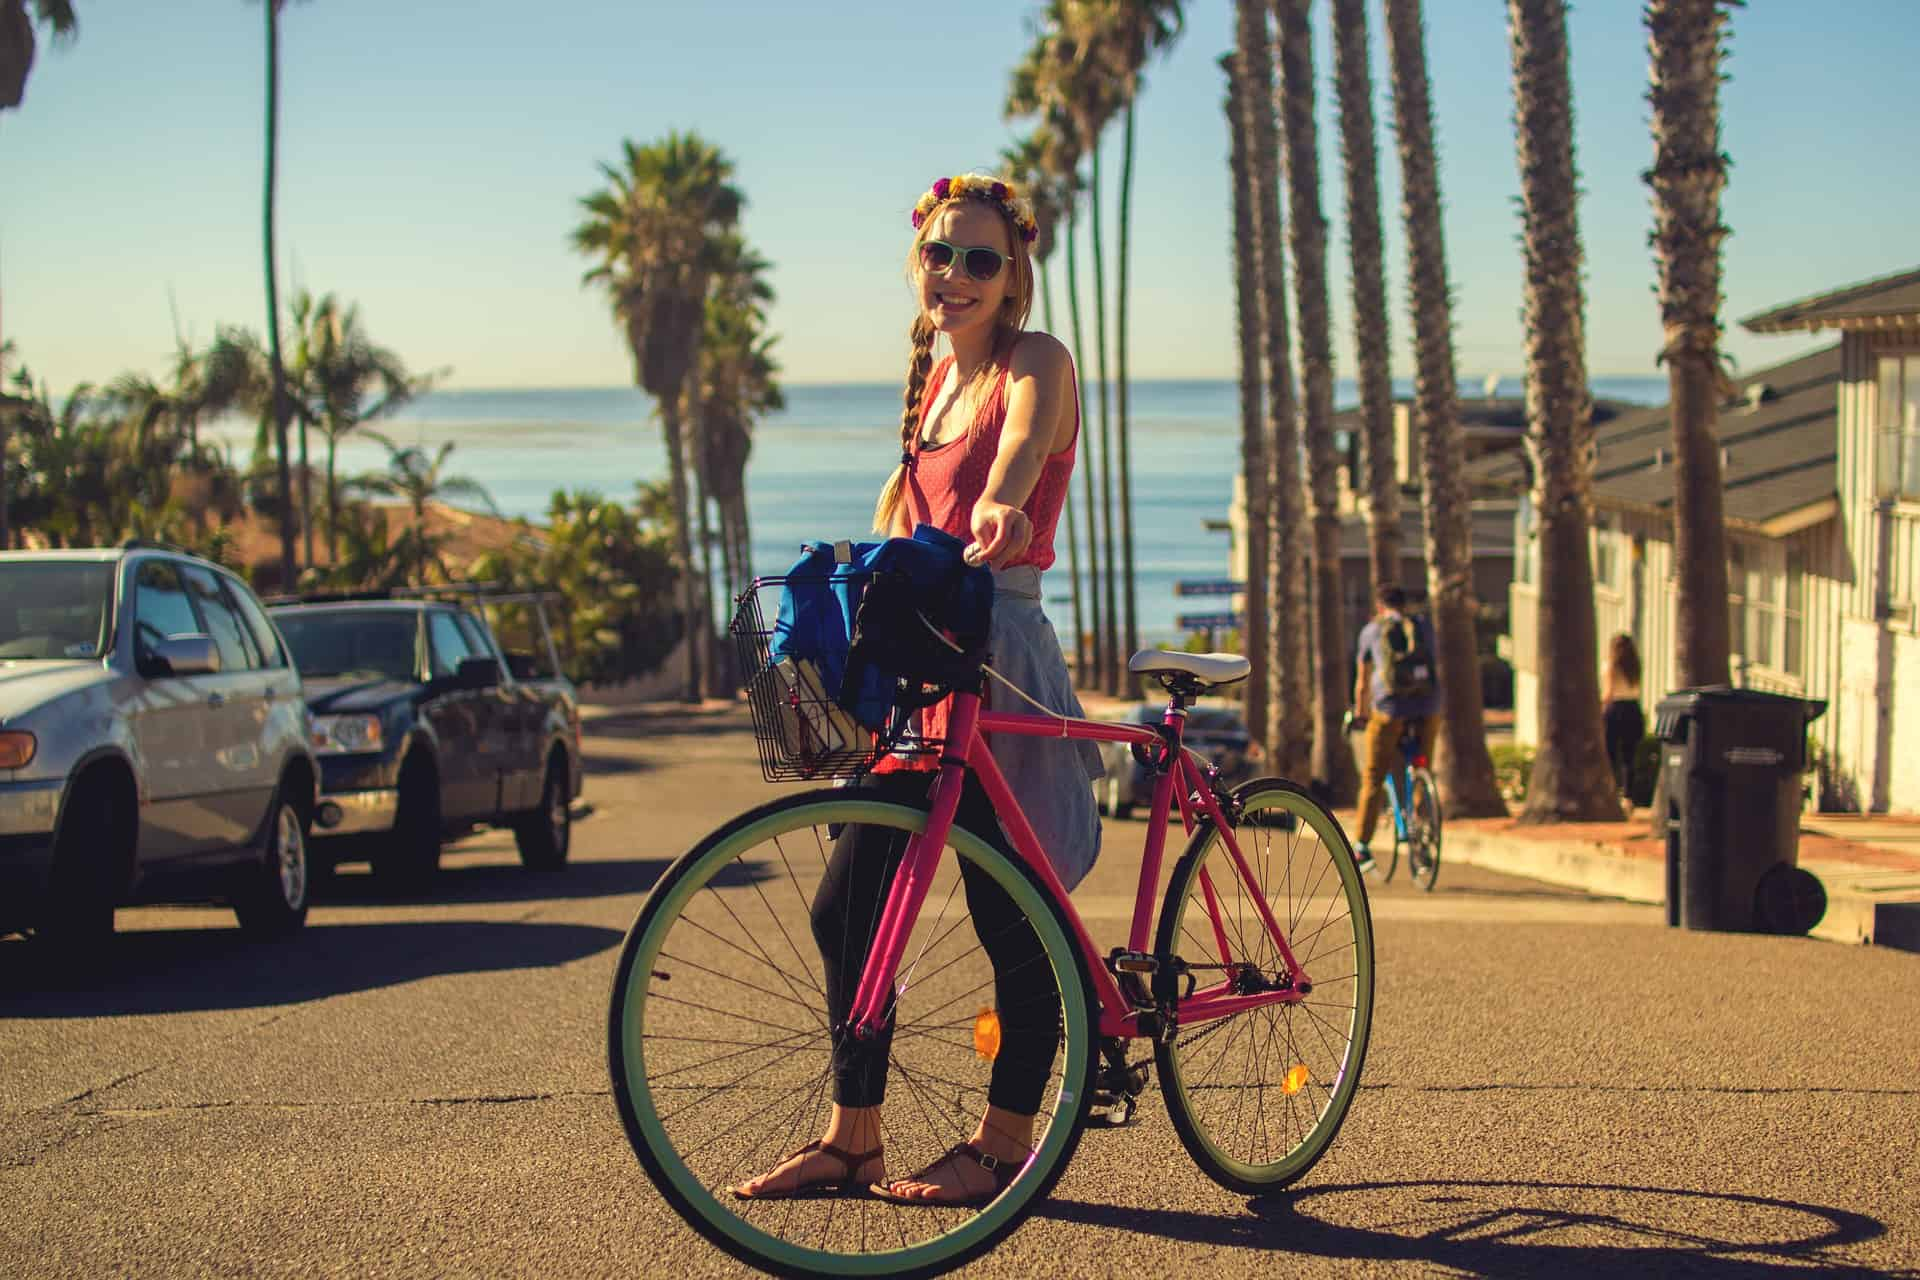 bicycle 1868162 1920